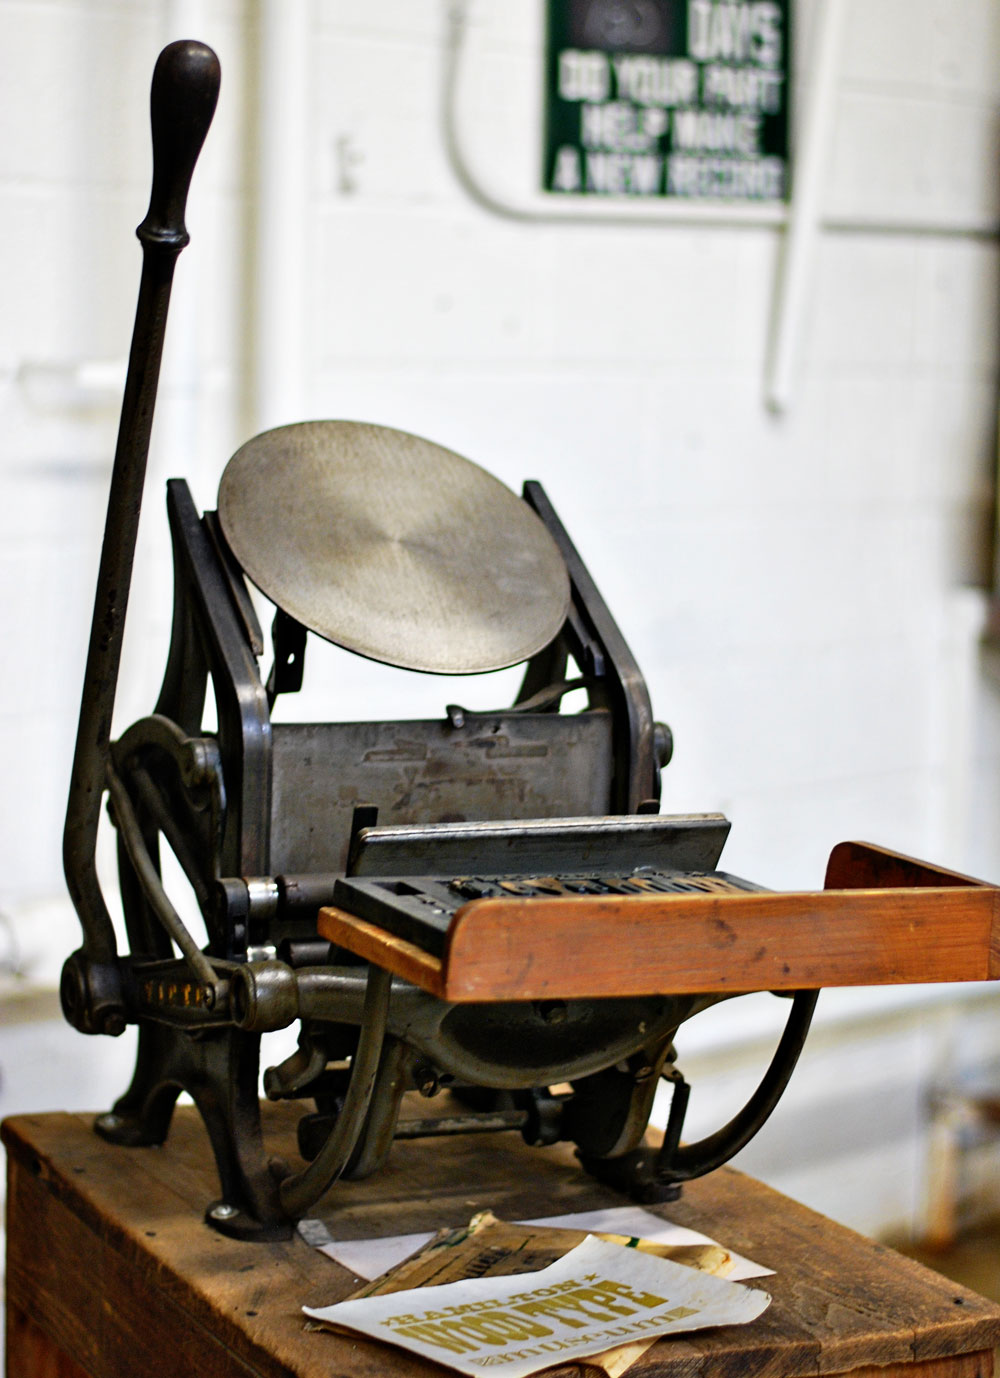 Letterpress printer at Hamilton Wood Type and Printing Museum, Two Rivers, WI